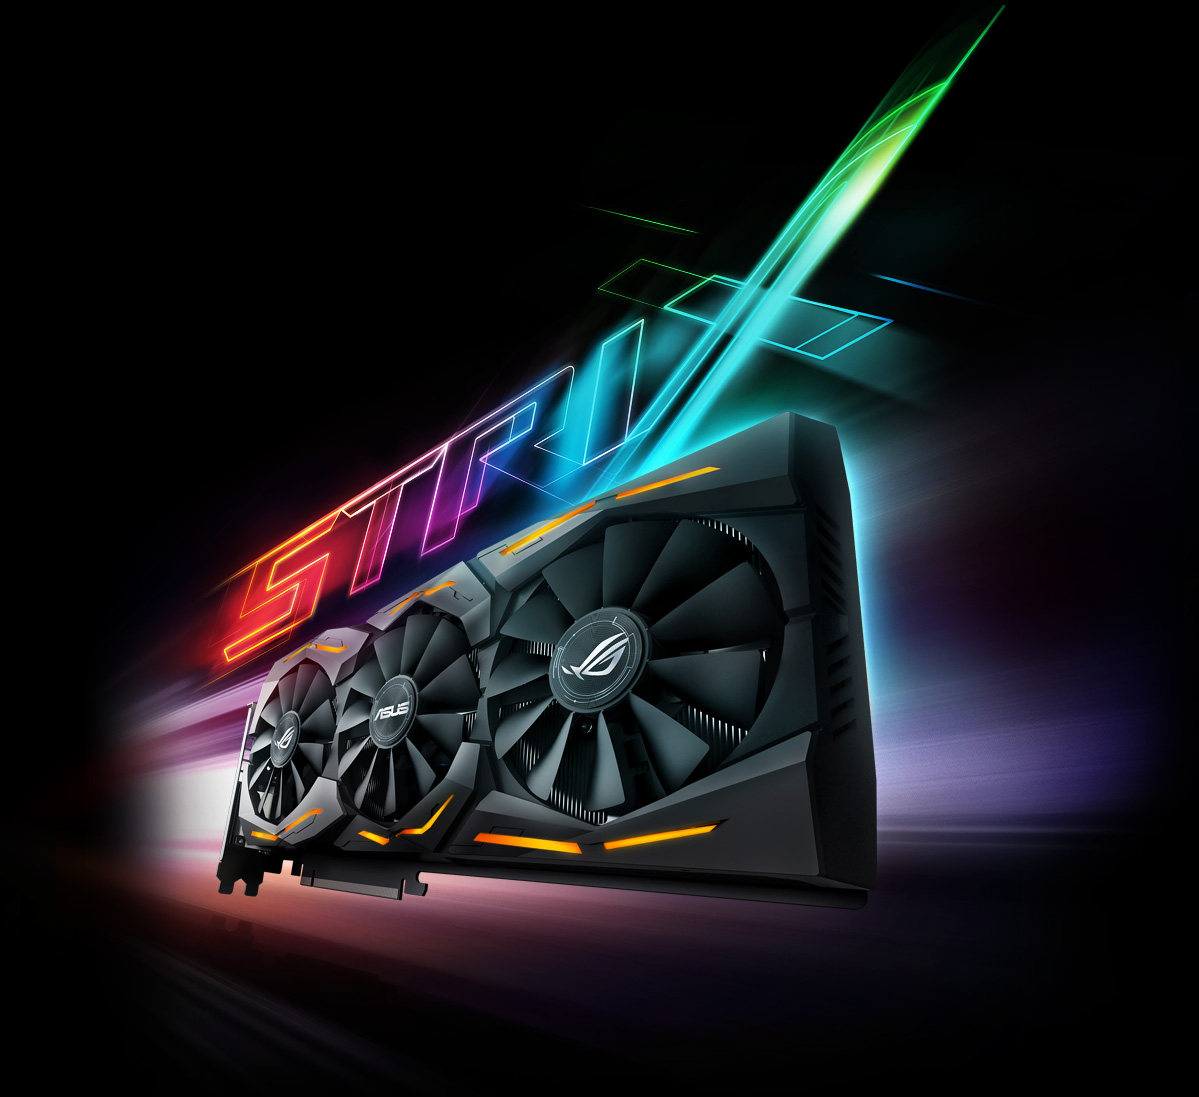 ROG-STRIX-RX580-8G-GAMING | Graphics Cards | ASUS Global